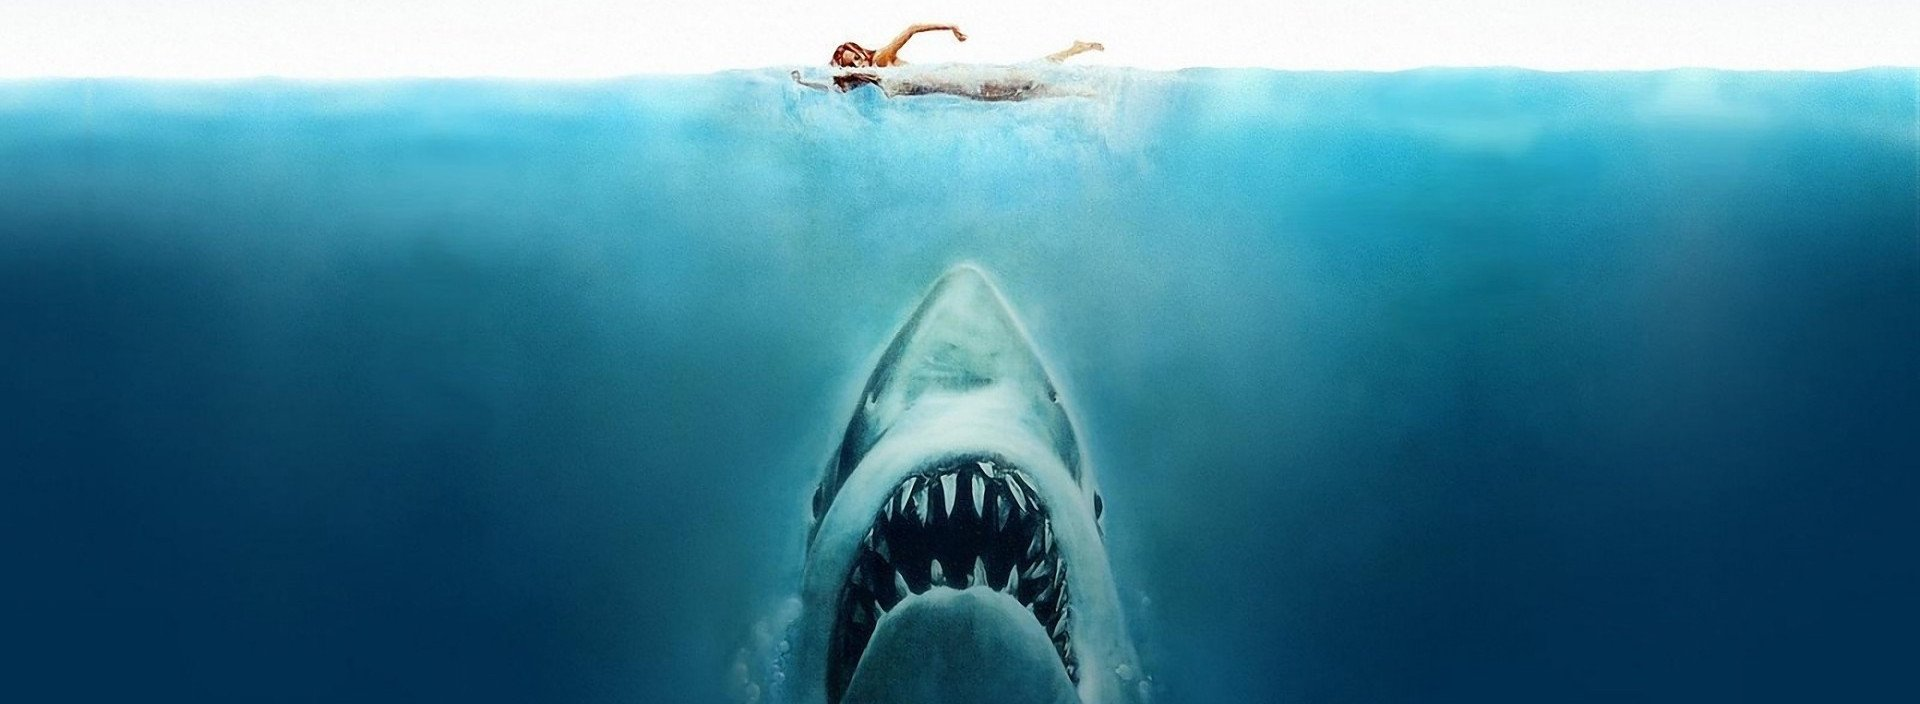 Film: Jaws feature image